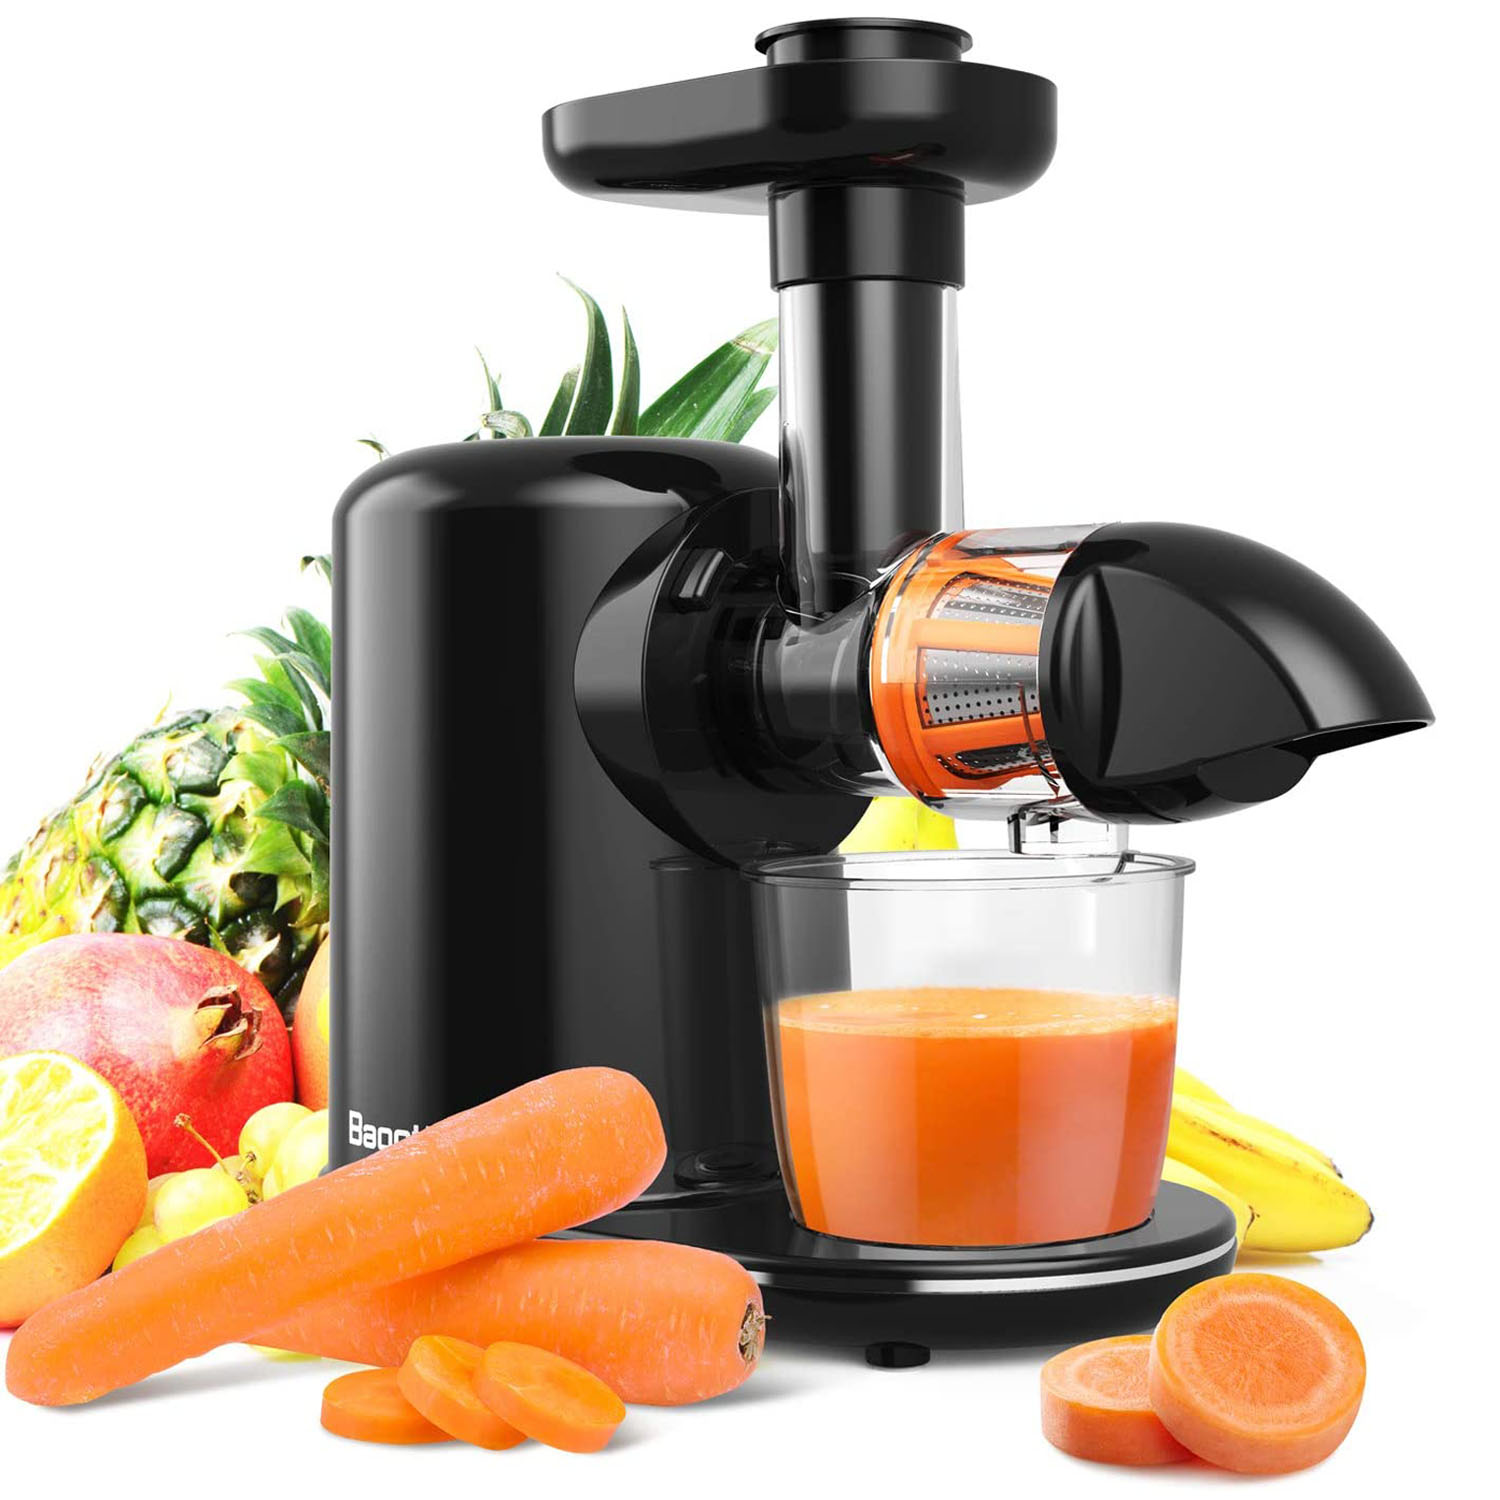 BSJ80 Slow Masticating Juicer